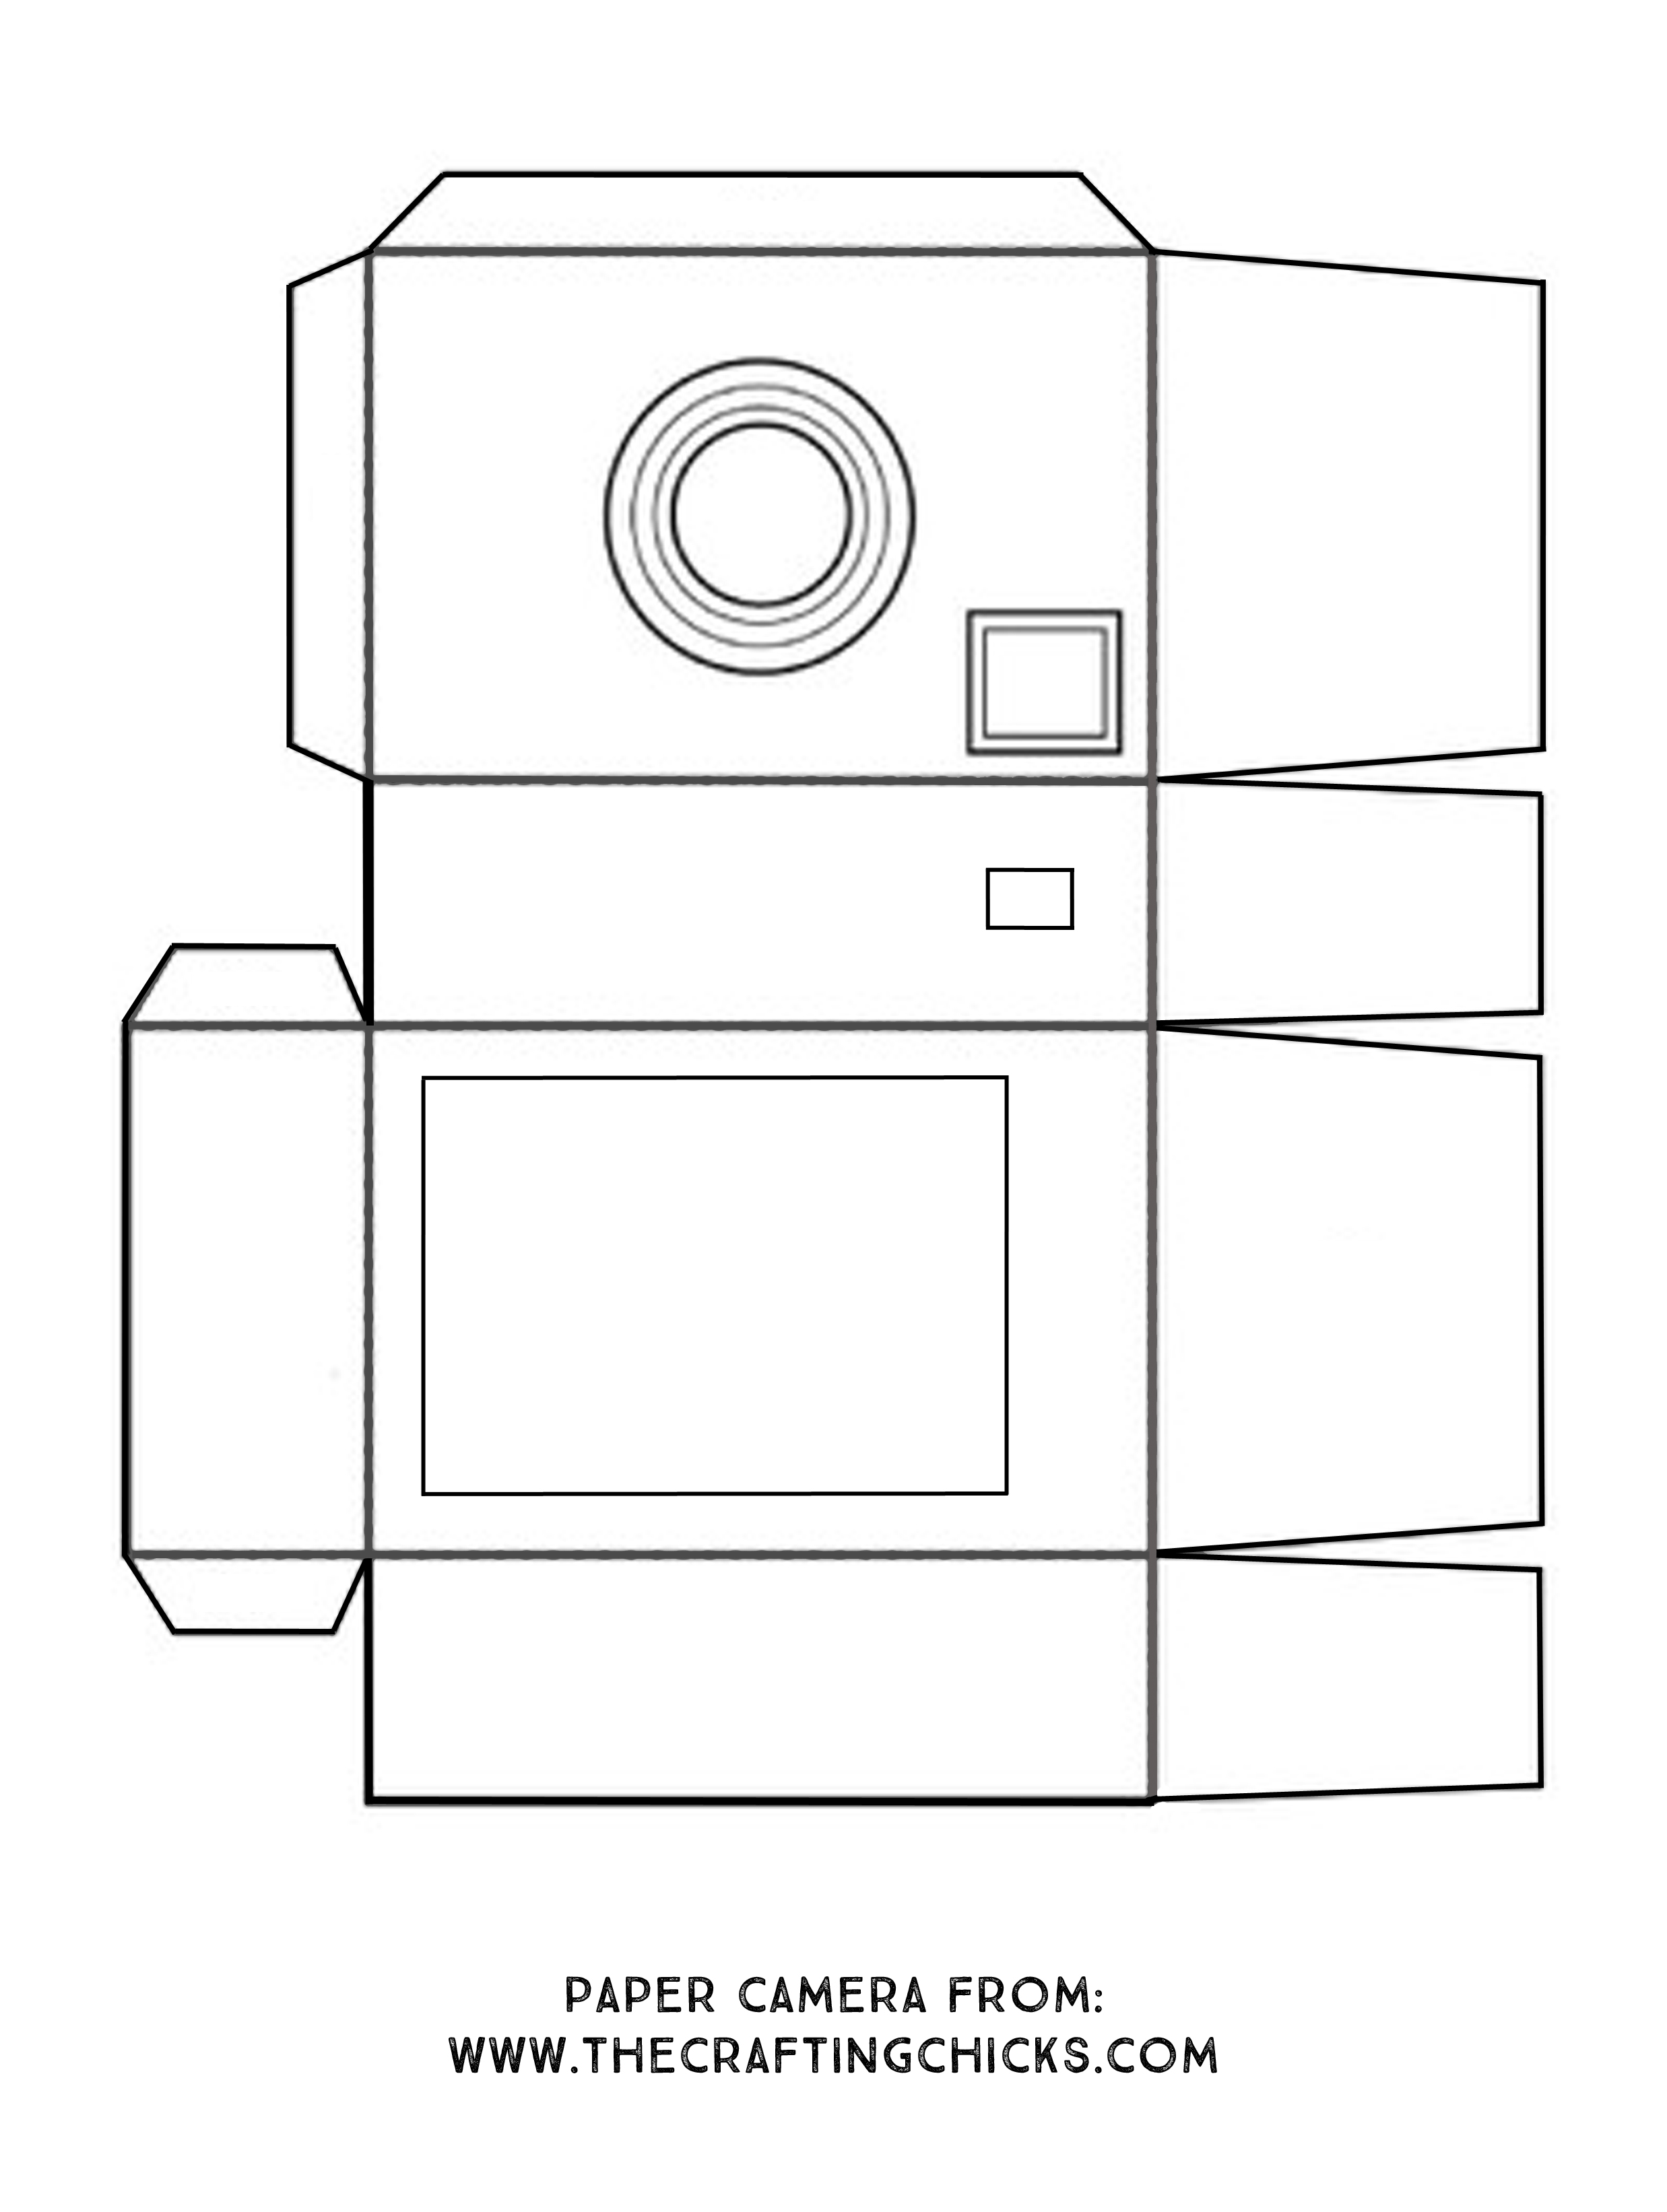 Tactueux image regarding camera template printable